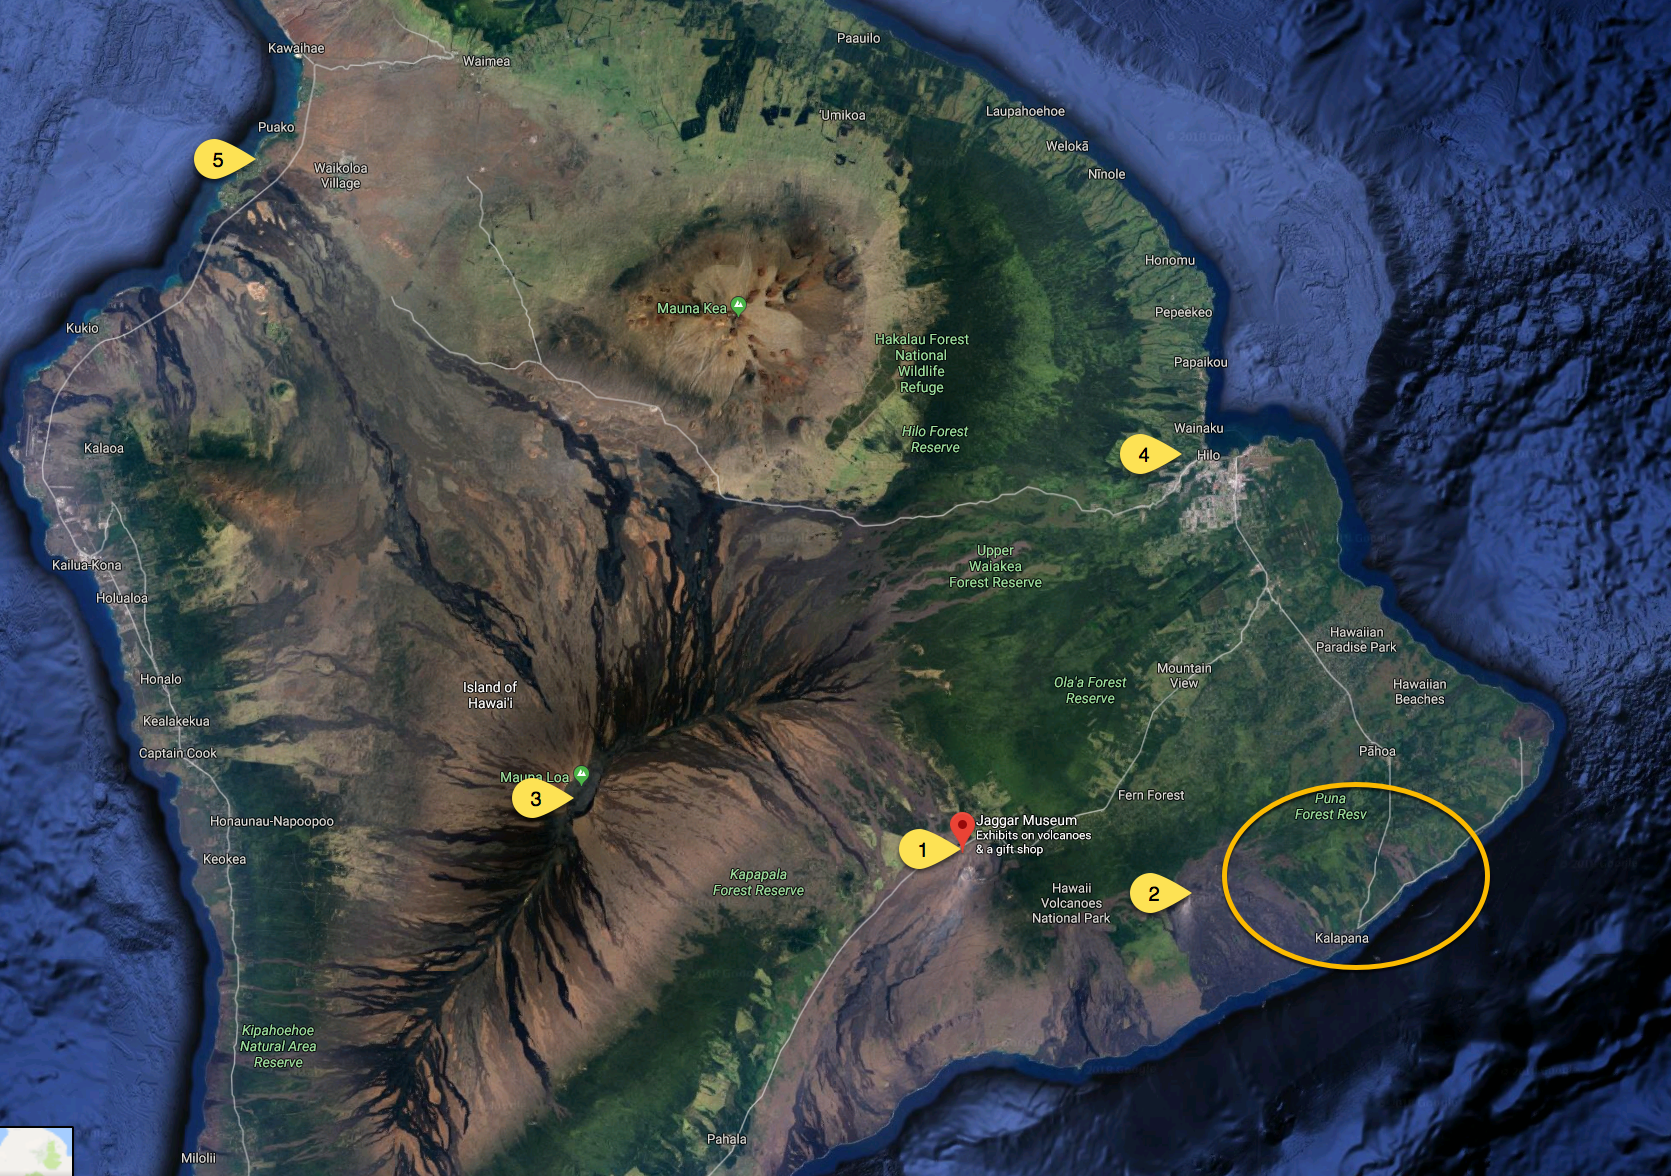 Volcano Activity Map.png